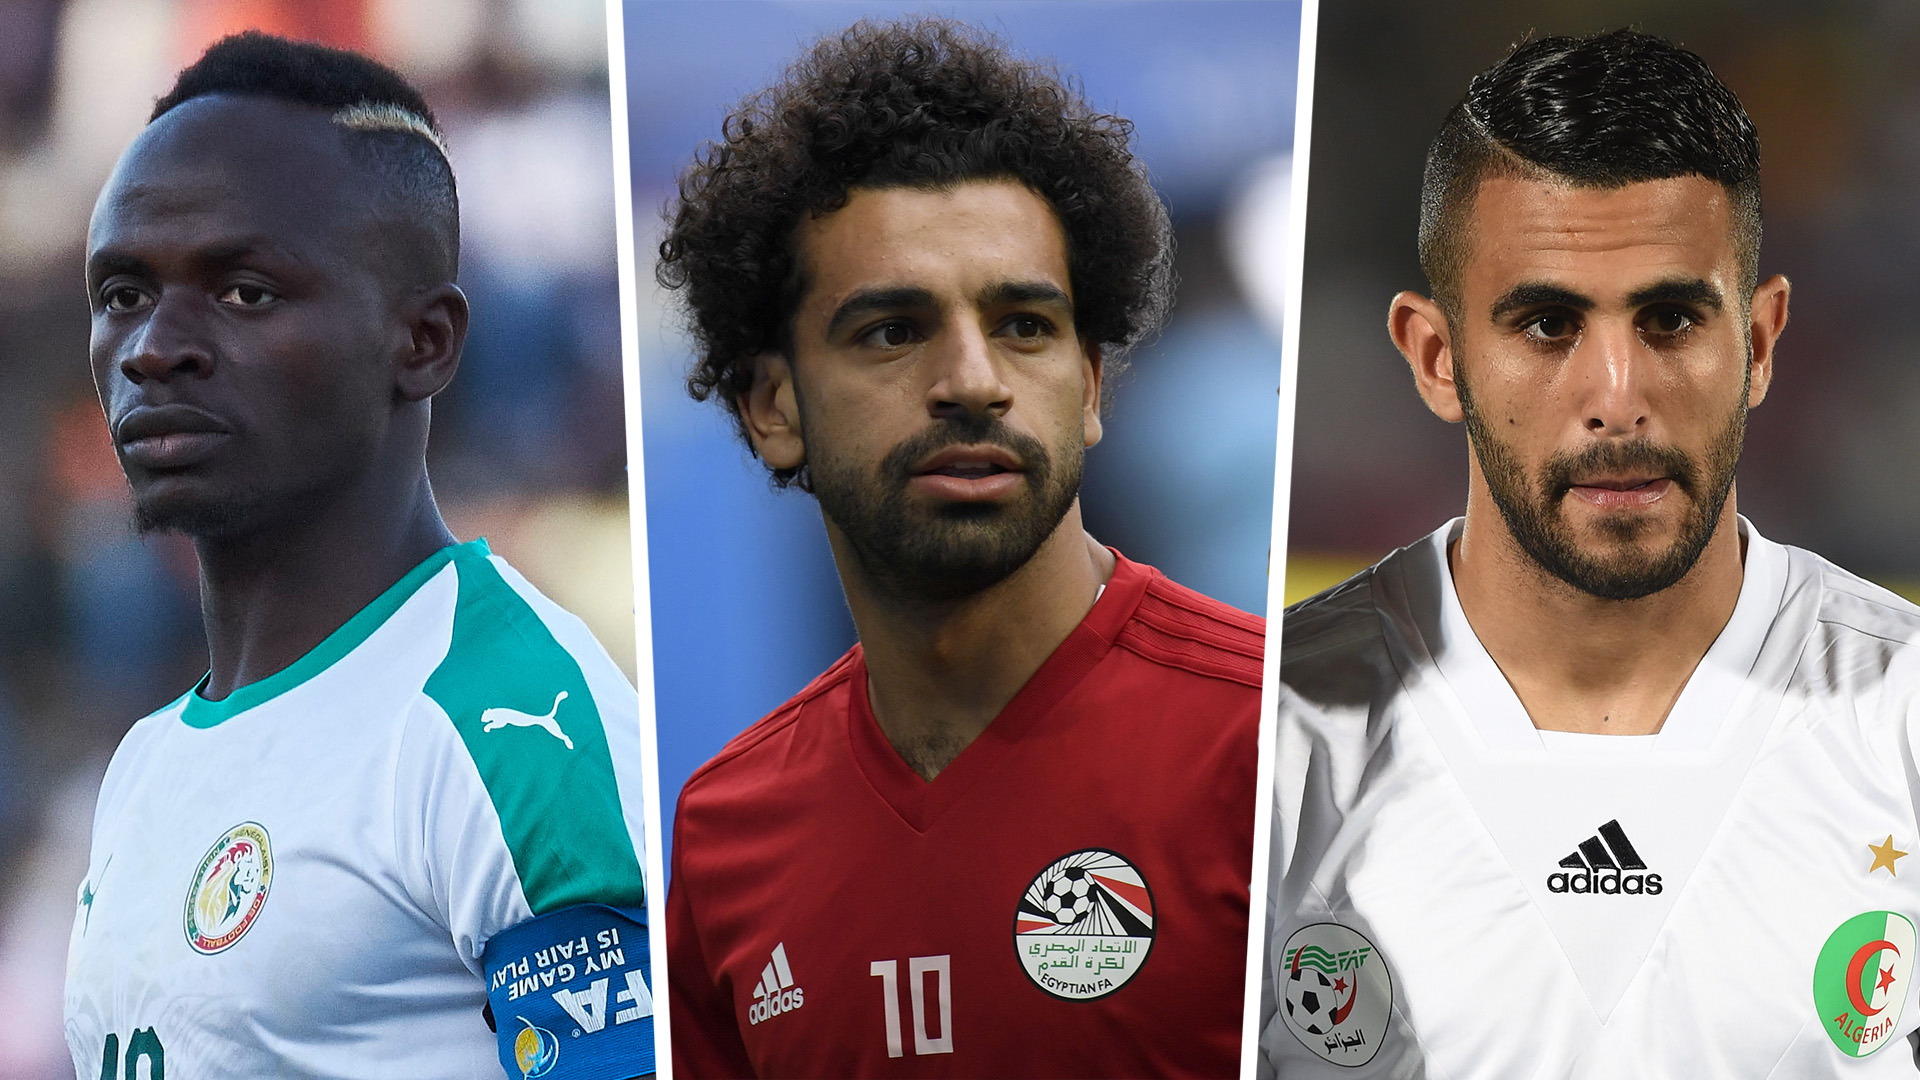 2019, a formidable year for Salah, Mane and Mahrez